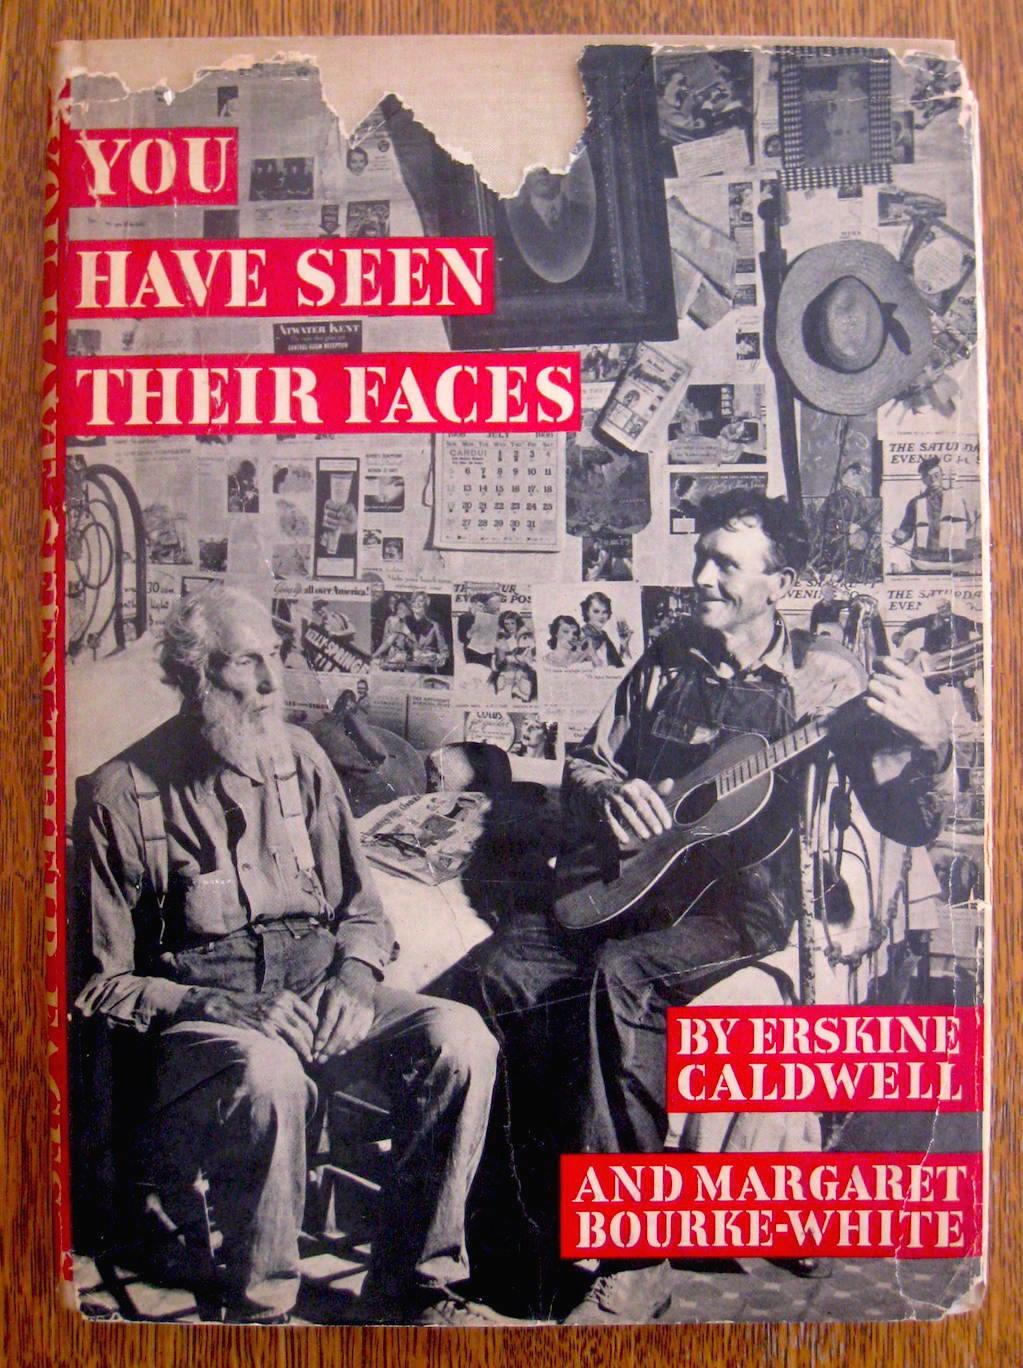 Have You Seen Their Faces: Bourke-White,Margaret; Erskine Caldwell